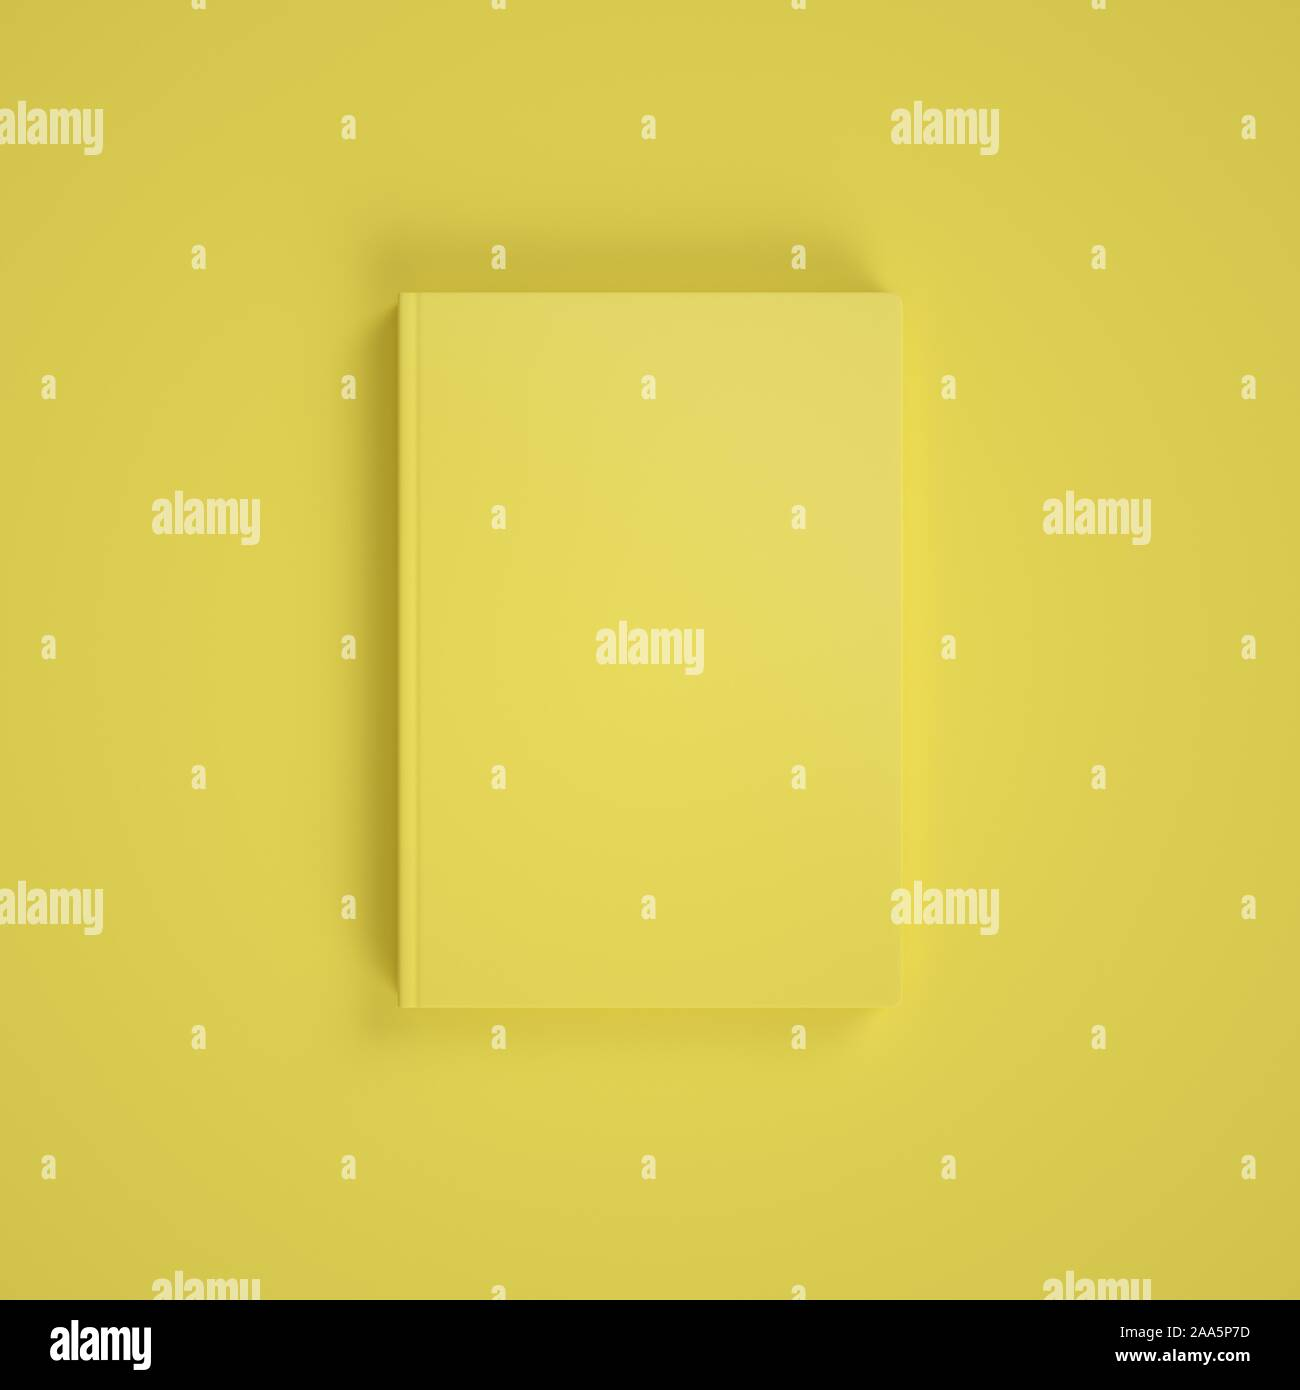 Download Blank Yellow Book On Yellow Background Easy Cover Mockup Front View Stock Photo Alamy PSD Mockup Templates